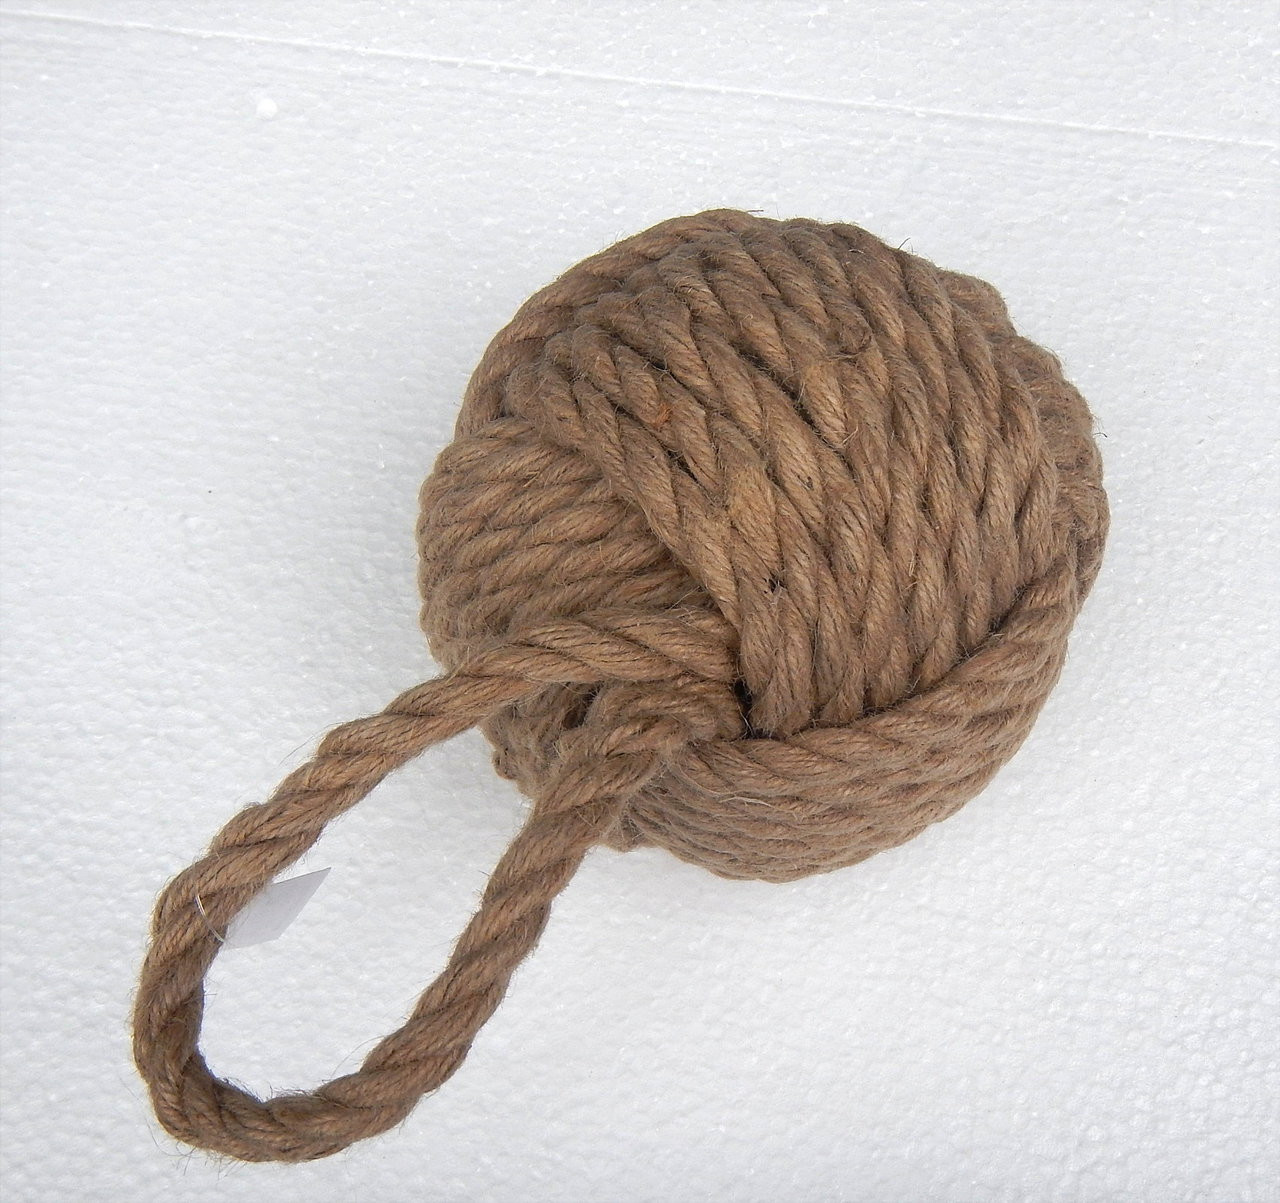 Rustic Door Stopper Big Rustic Nautical Rope Doorstop